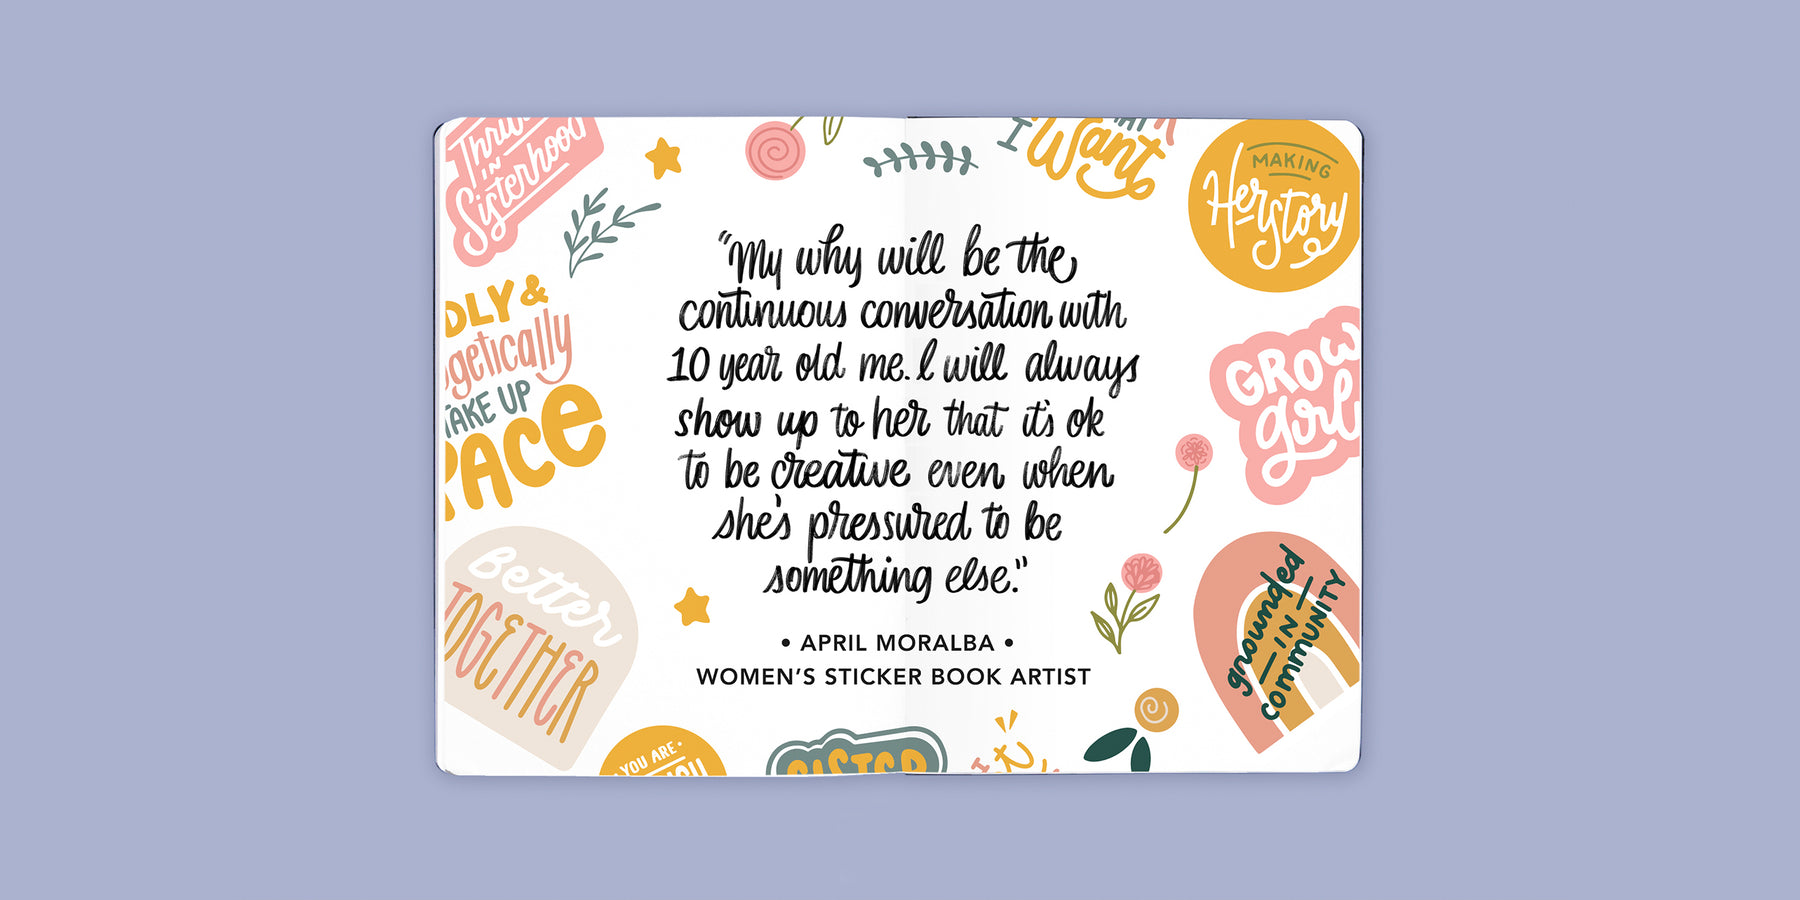 Sticker Book Artist Interview: April Moralba